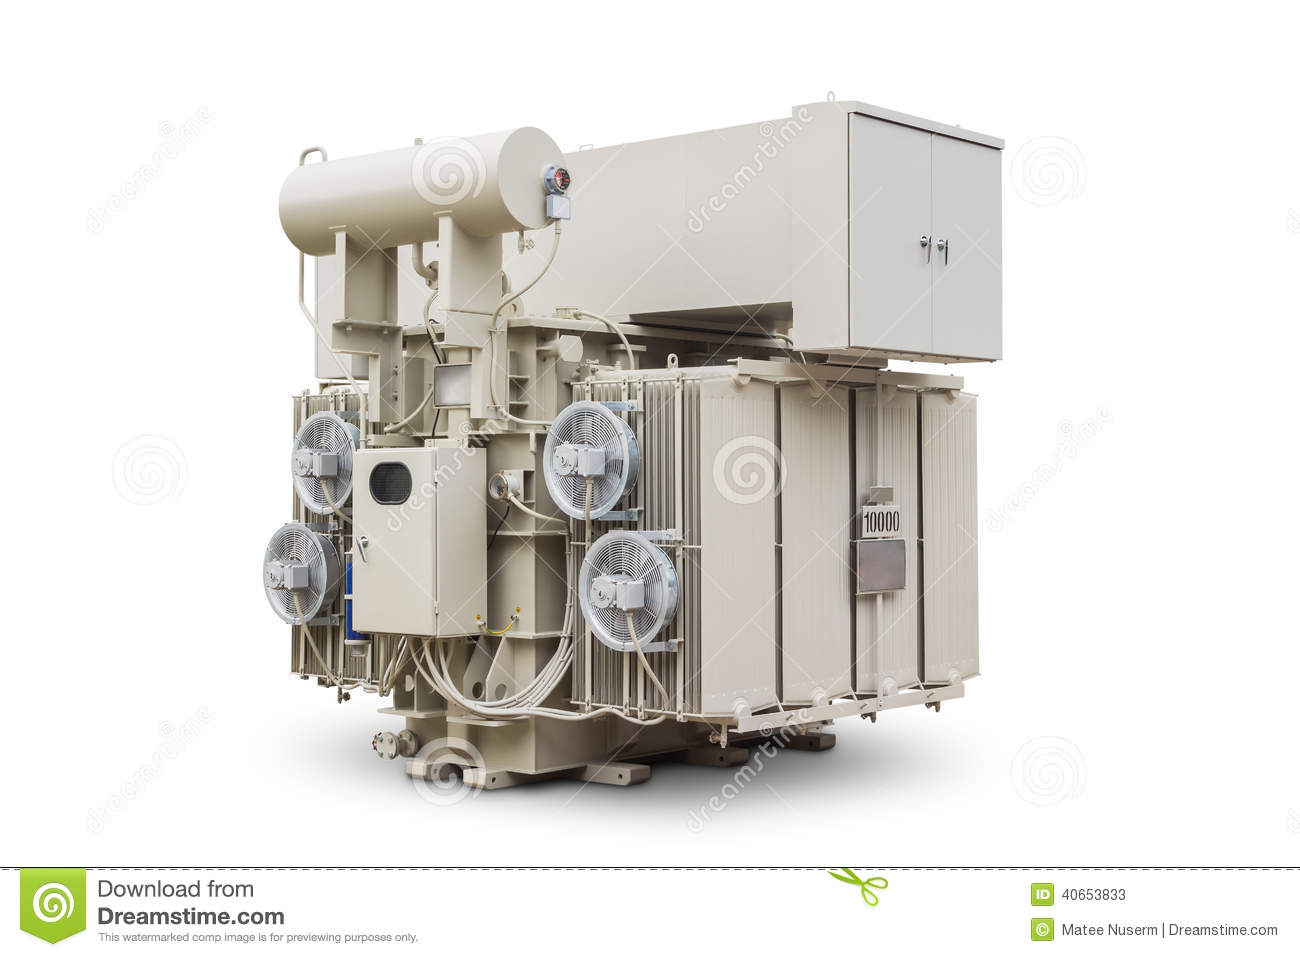 lifier Power Supply Using High Current Transformer furthermore Stock Photos Oil Immersed Power Transformer Three Phase Kva Mva Conservator Type Radiator Fin Equips Forced Air Cooling Fan Image40653833 likewise Sale 7546768 Gas Delivery Lpg Semi Trailer Truck Fuwa 13 Ton Tri Axle Liquid Tank Trailers besides Rccb further Mitsubishi Tv Wiring Diagram. on electrical transformer box